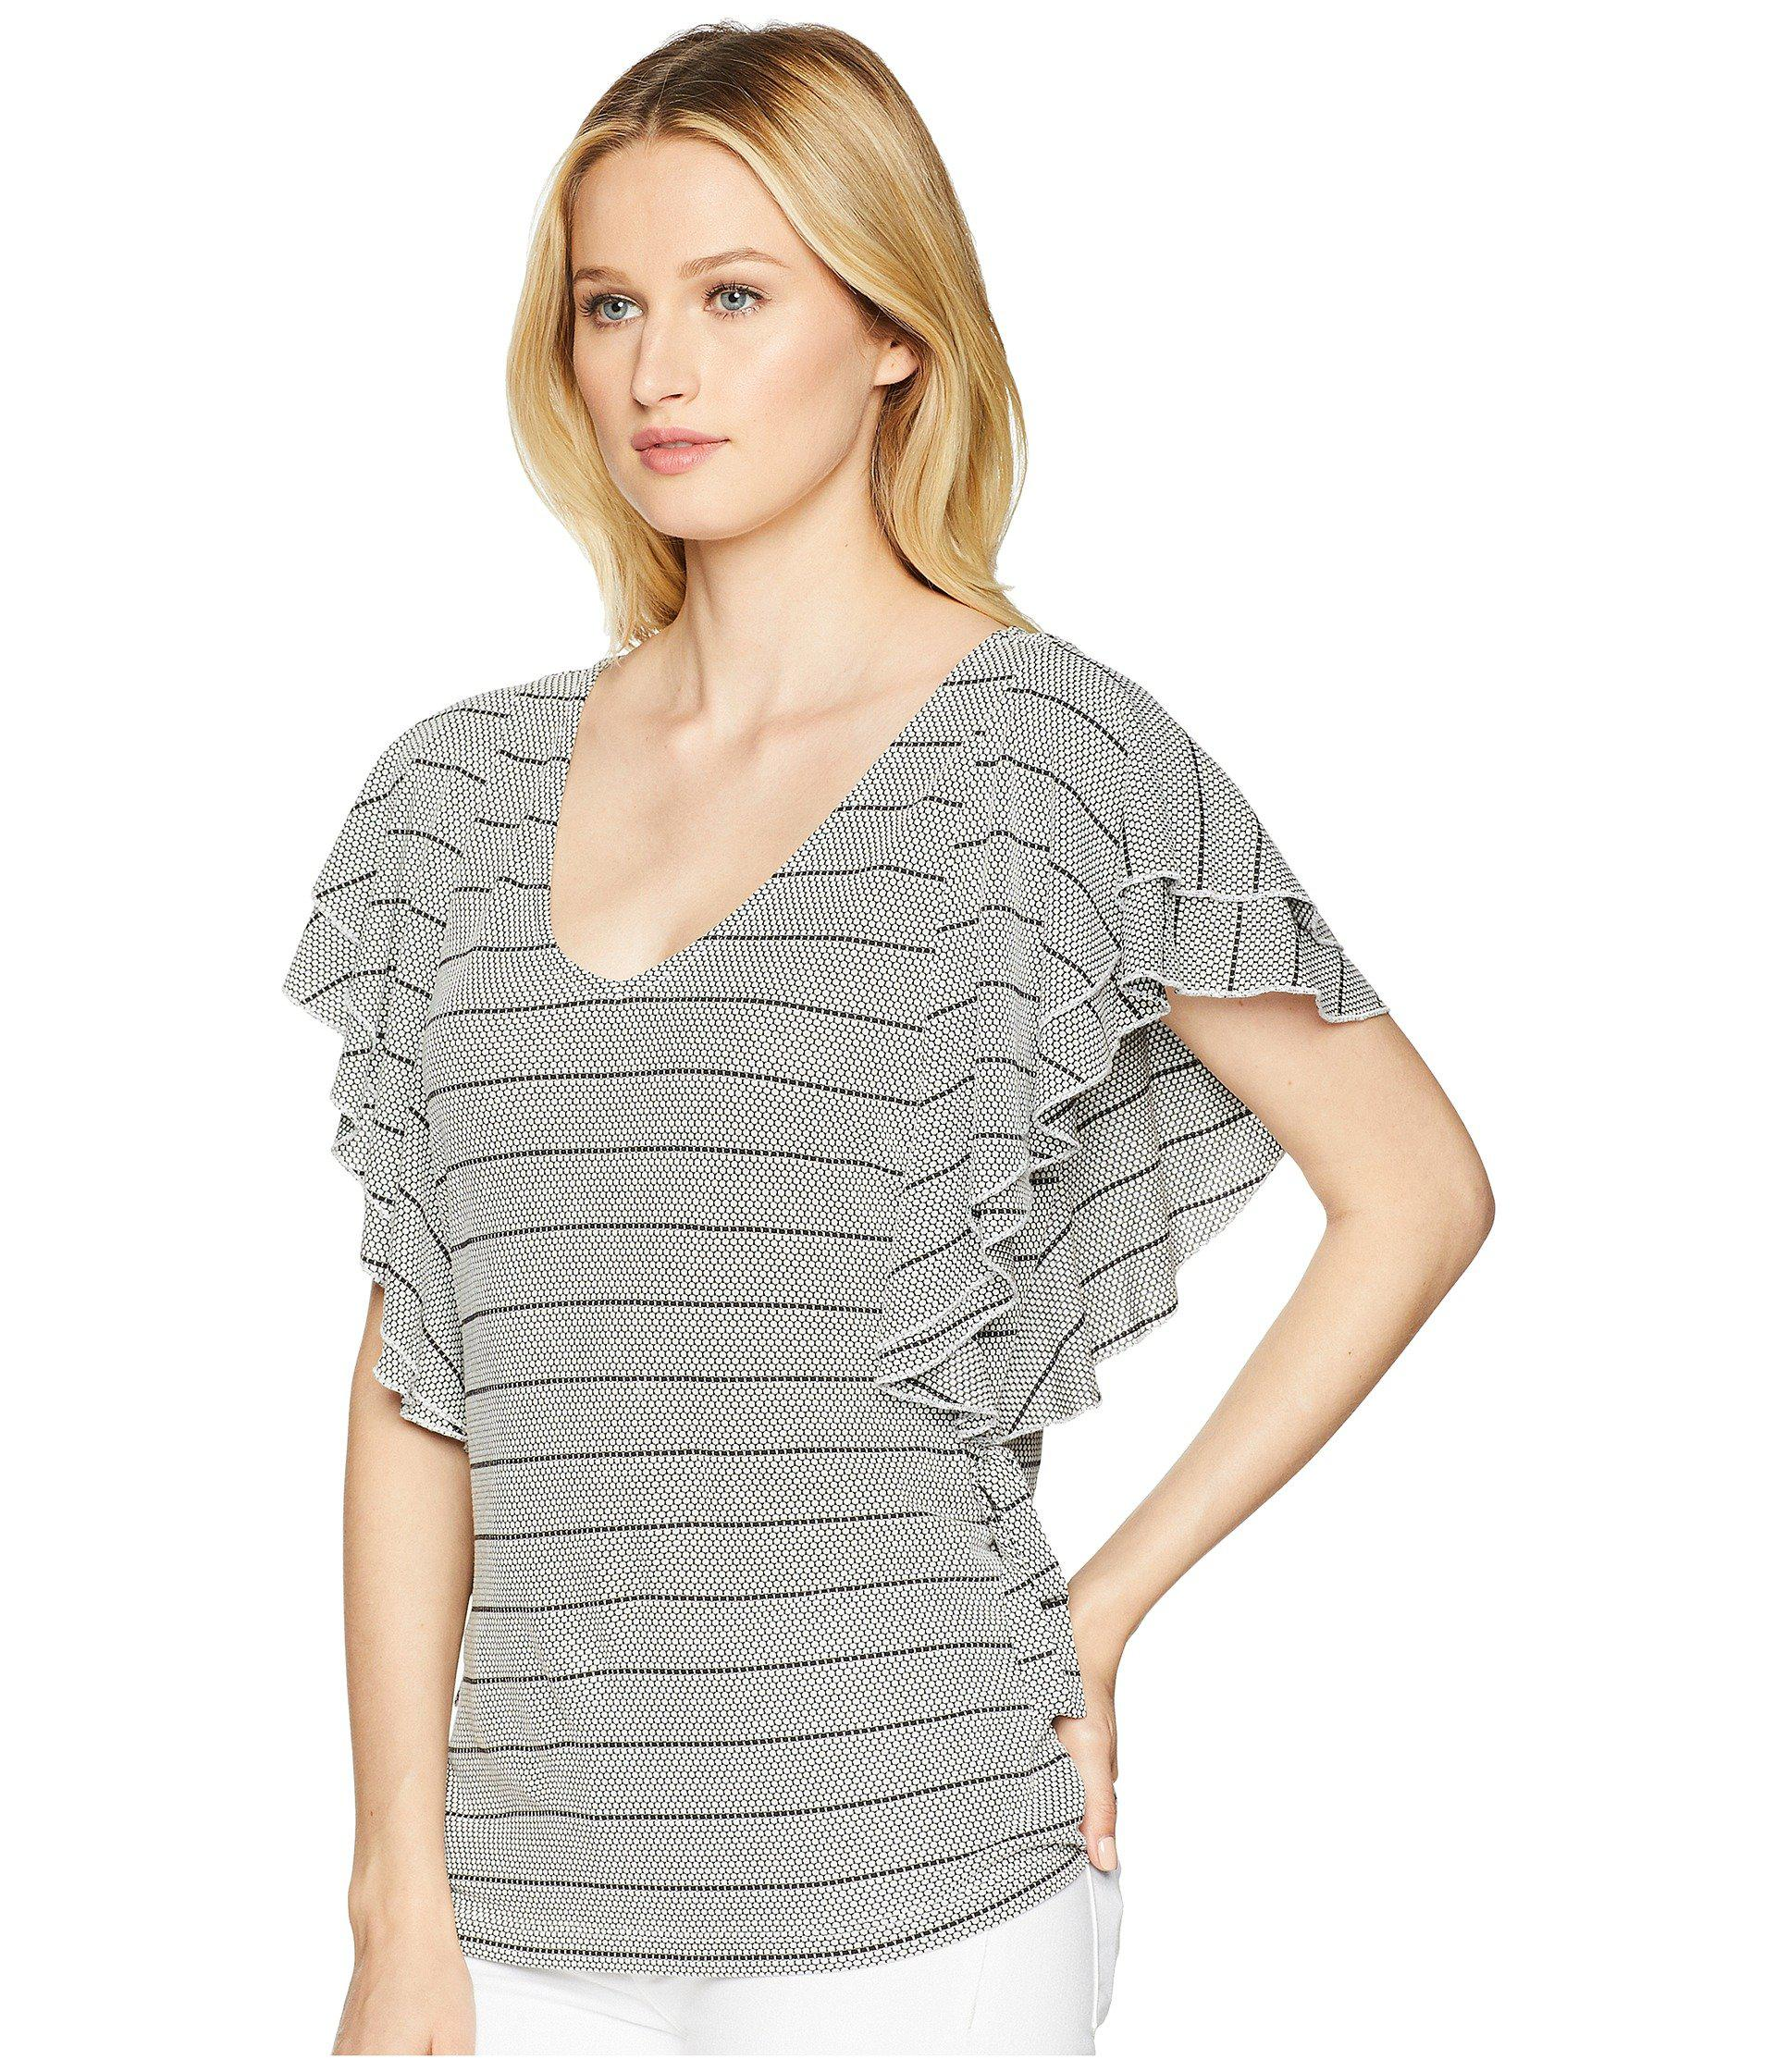 1a9b8453b2a3e5 Lyst - Ivanka Trump Stripe Ruffle Sleeve Scoop Neck Top With Open Hem in  Gray - Save 42.5531914893617%